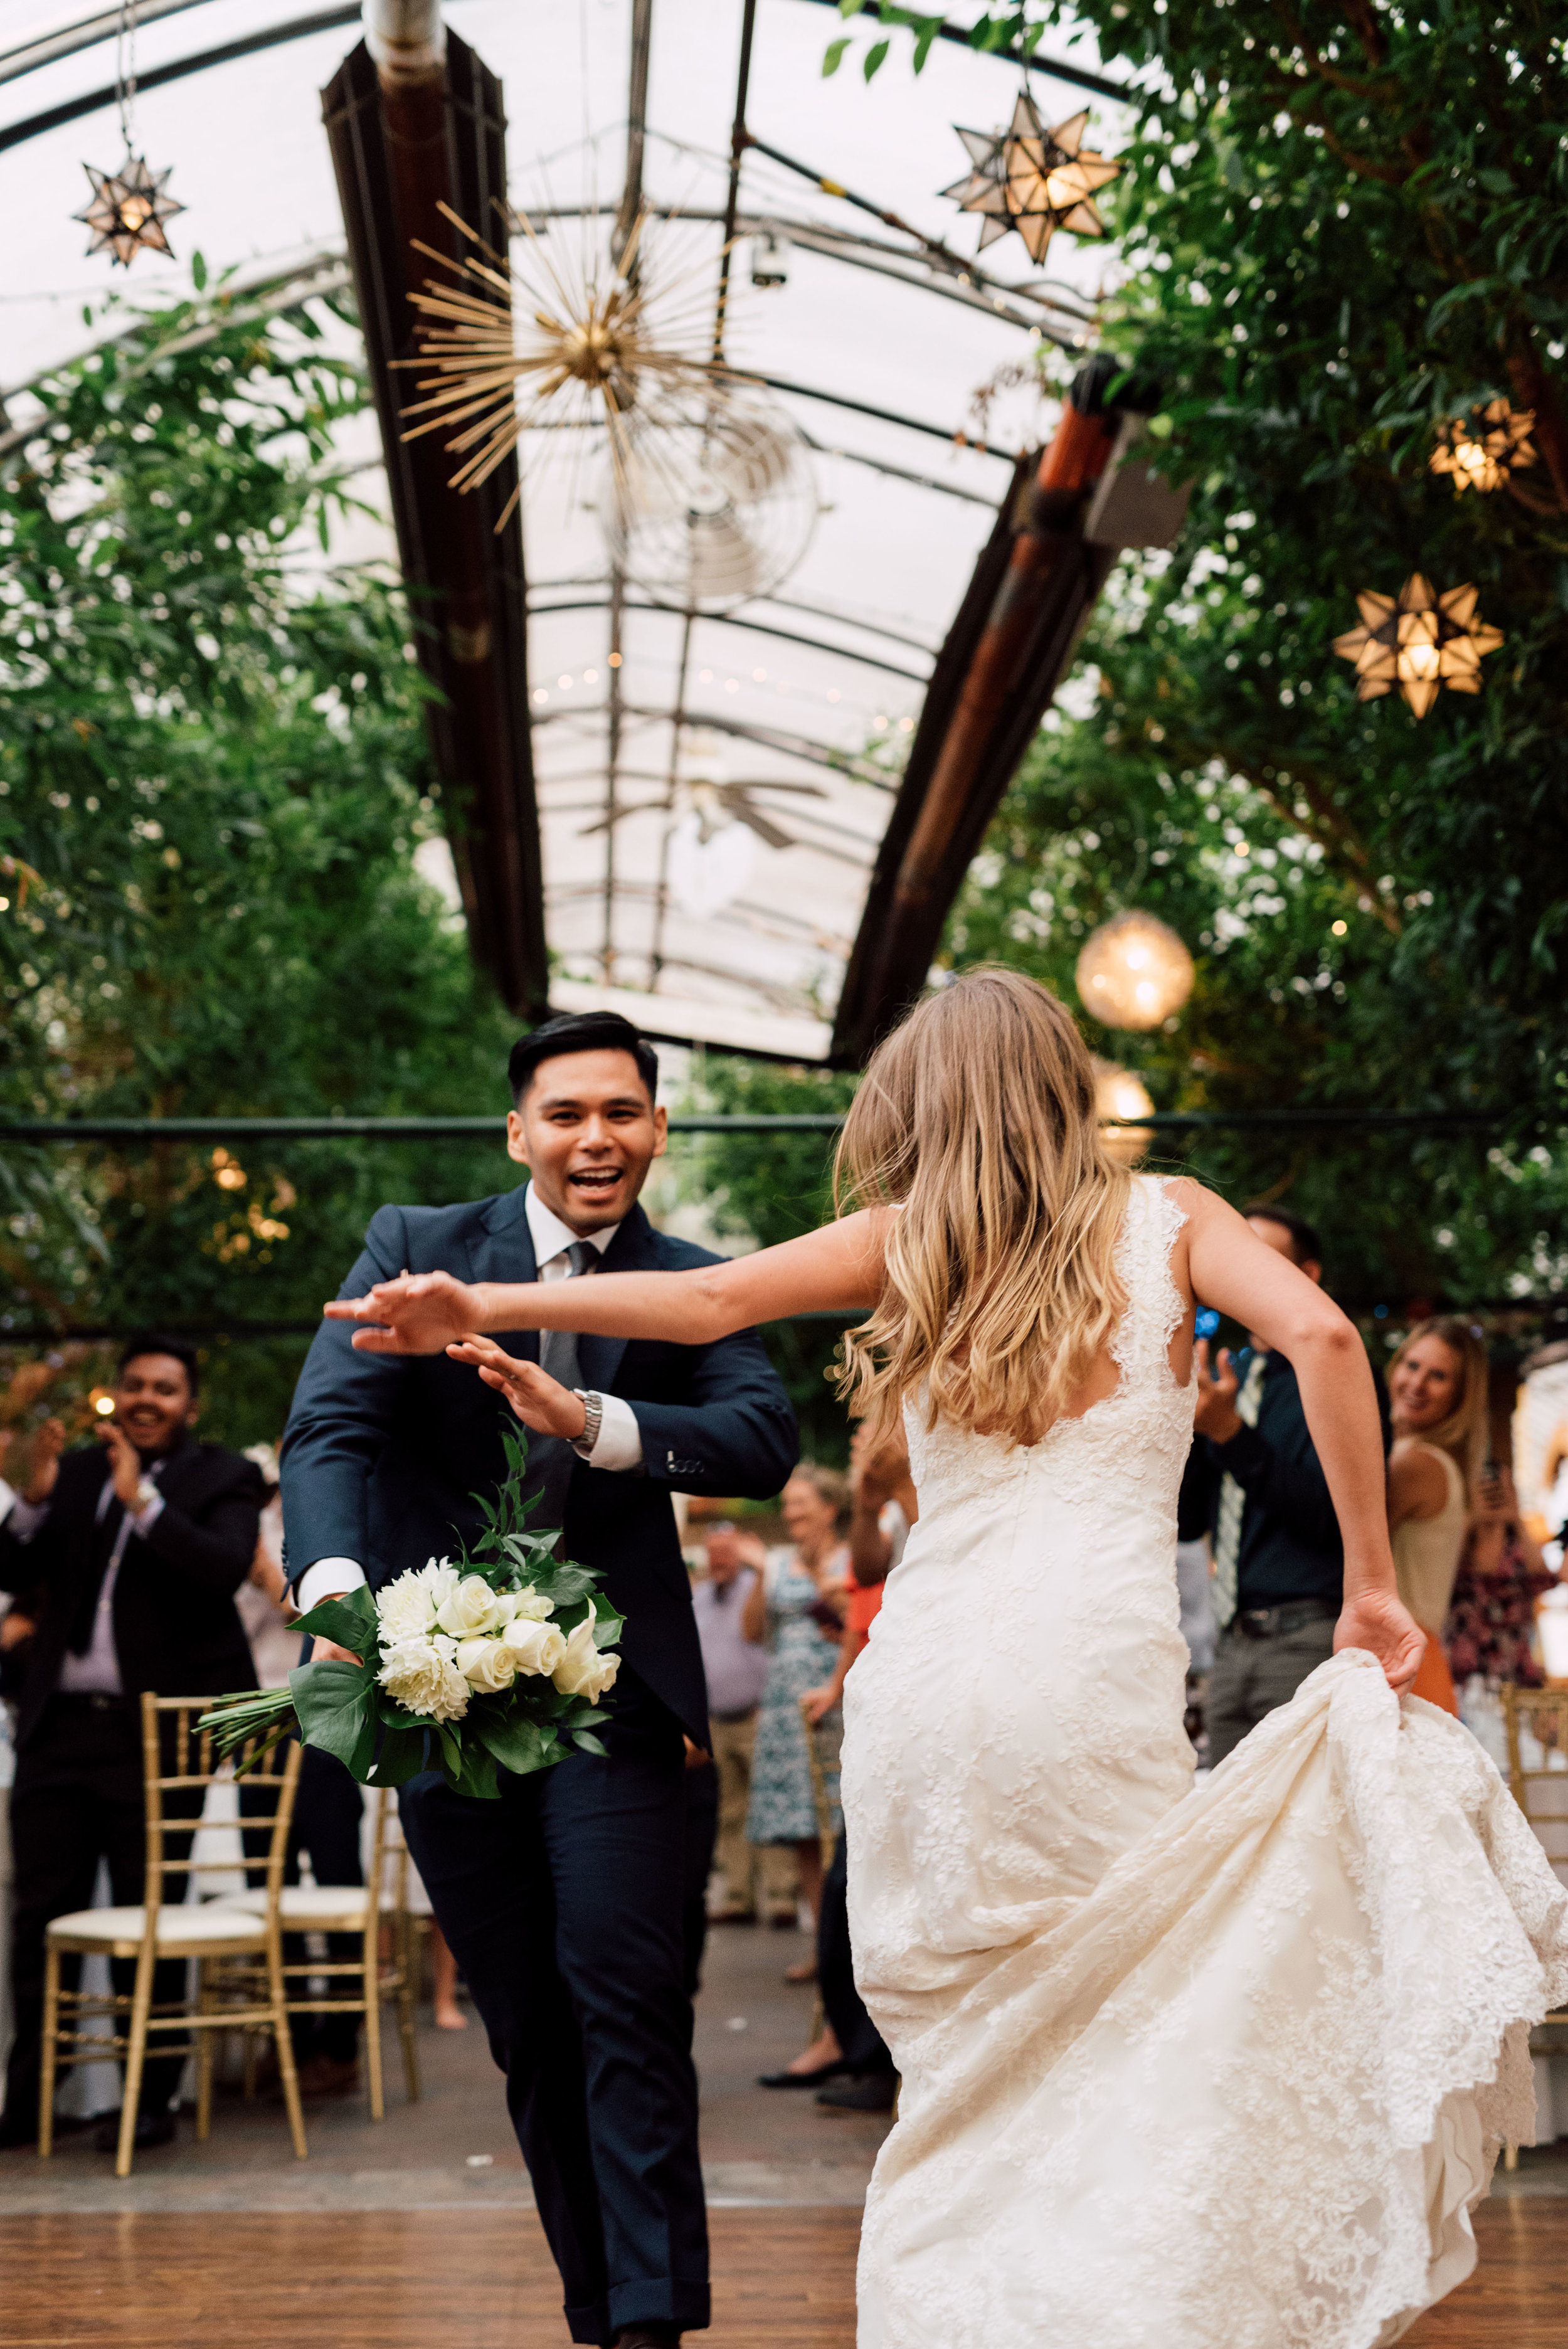 Introducing the wedding party and couple to the dance floor at madsens greenhouse